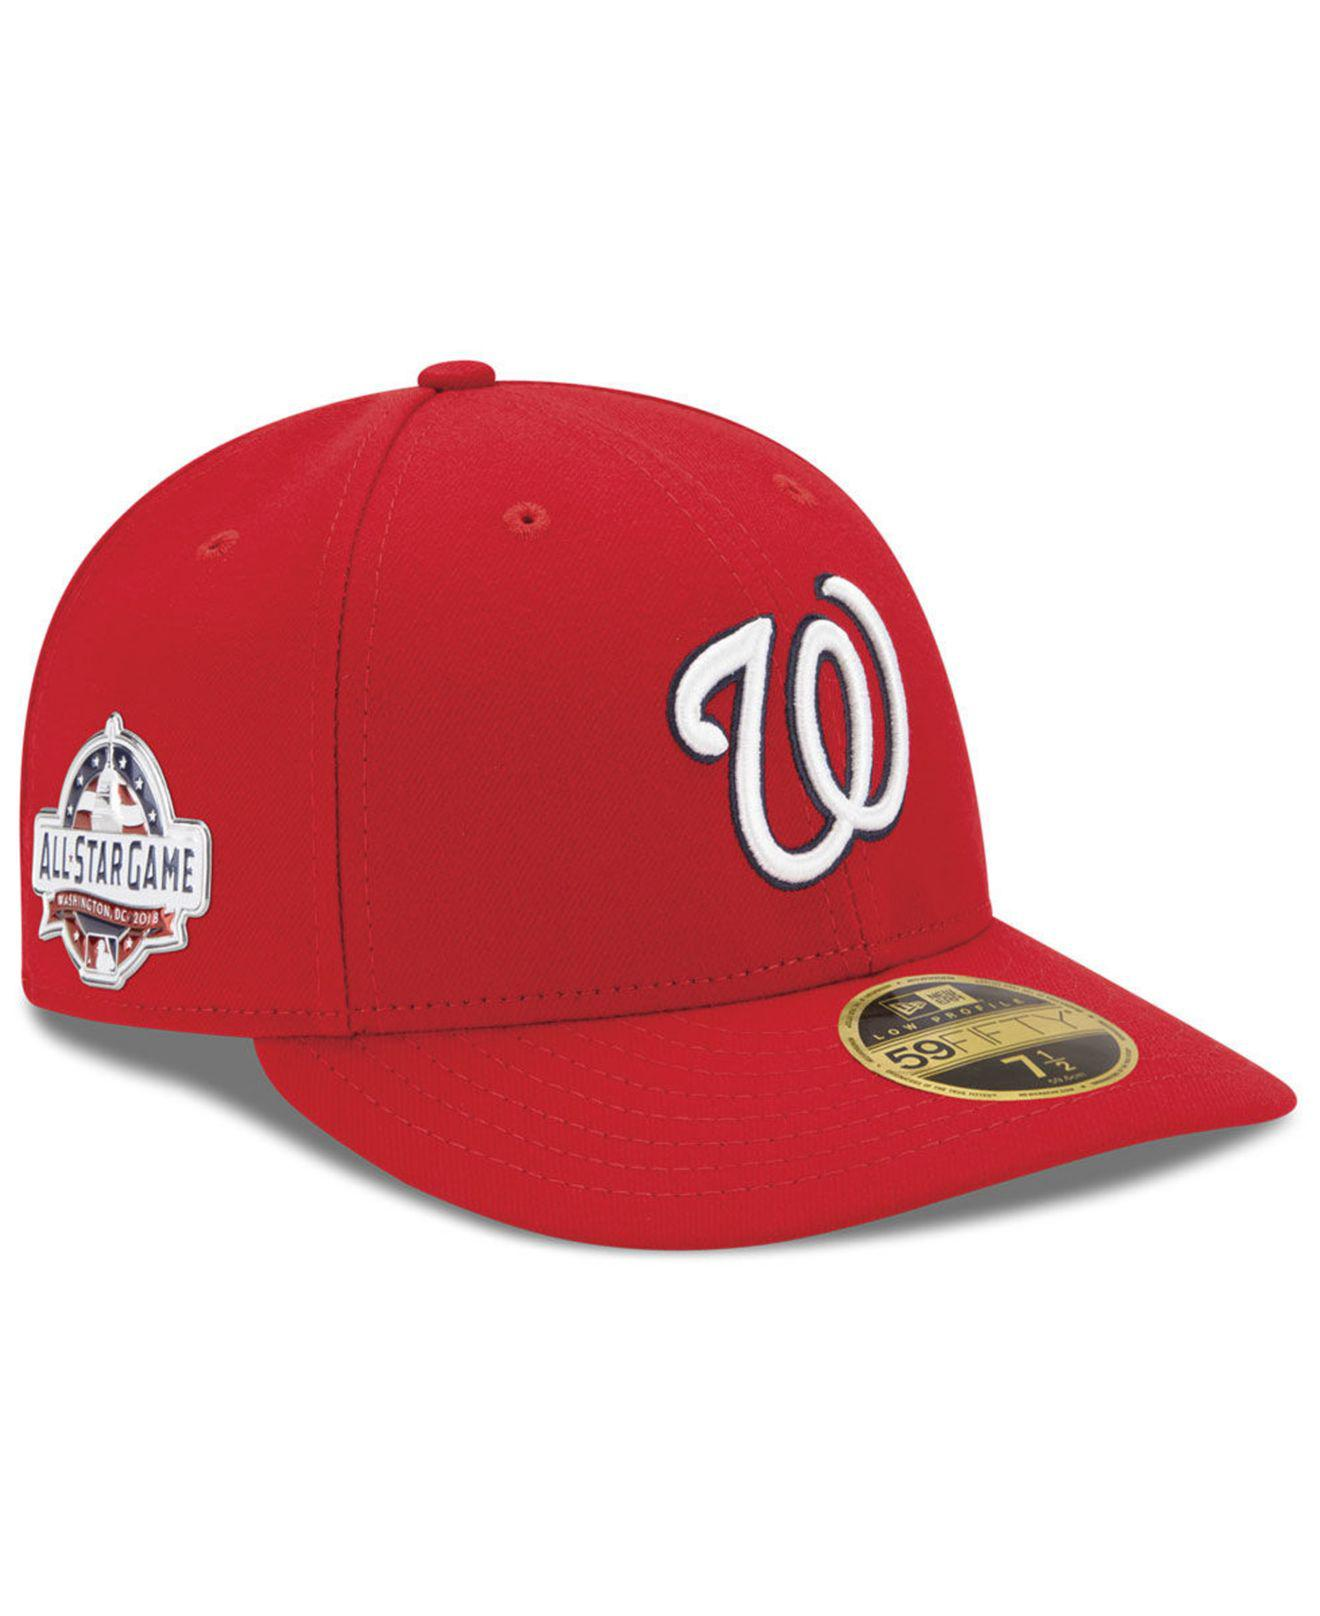 newest collection 06eab 0a30d Lyst - KTZ Washington Nationals Washington All Star Game Patch Low ...